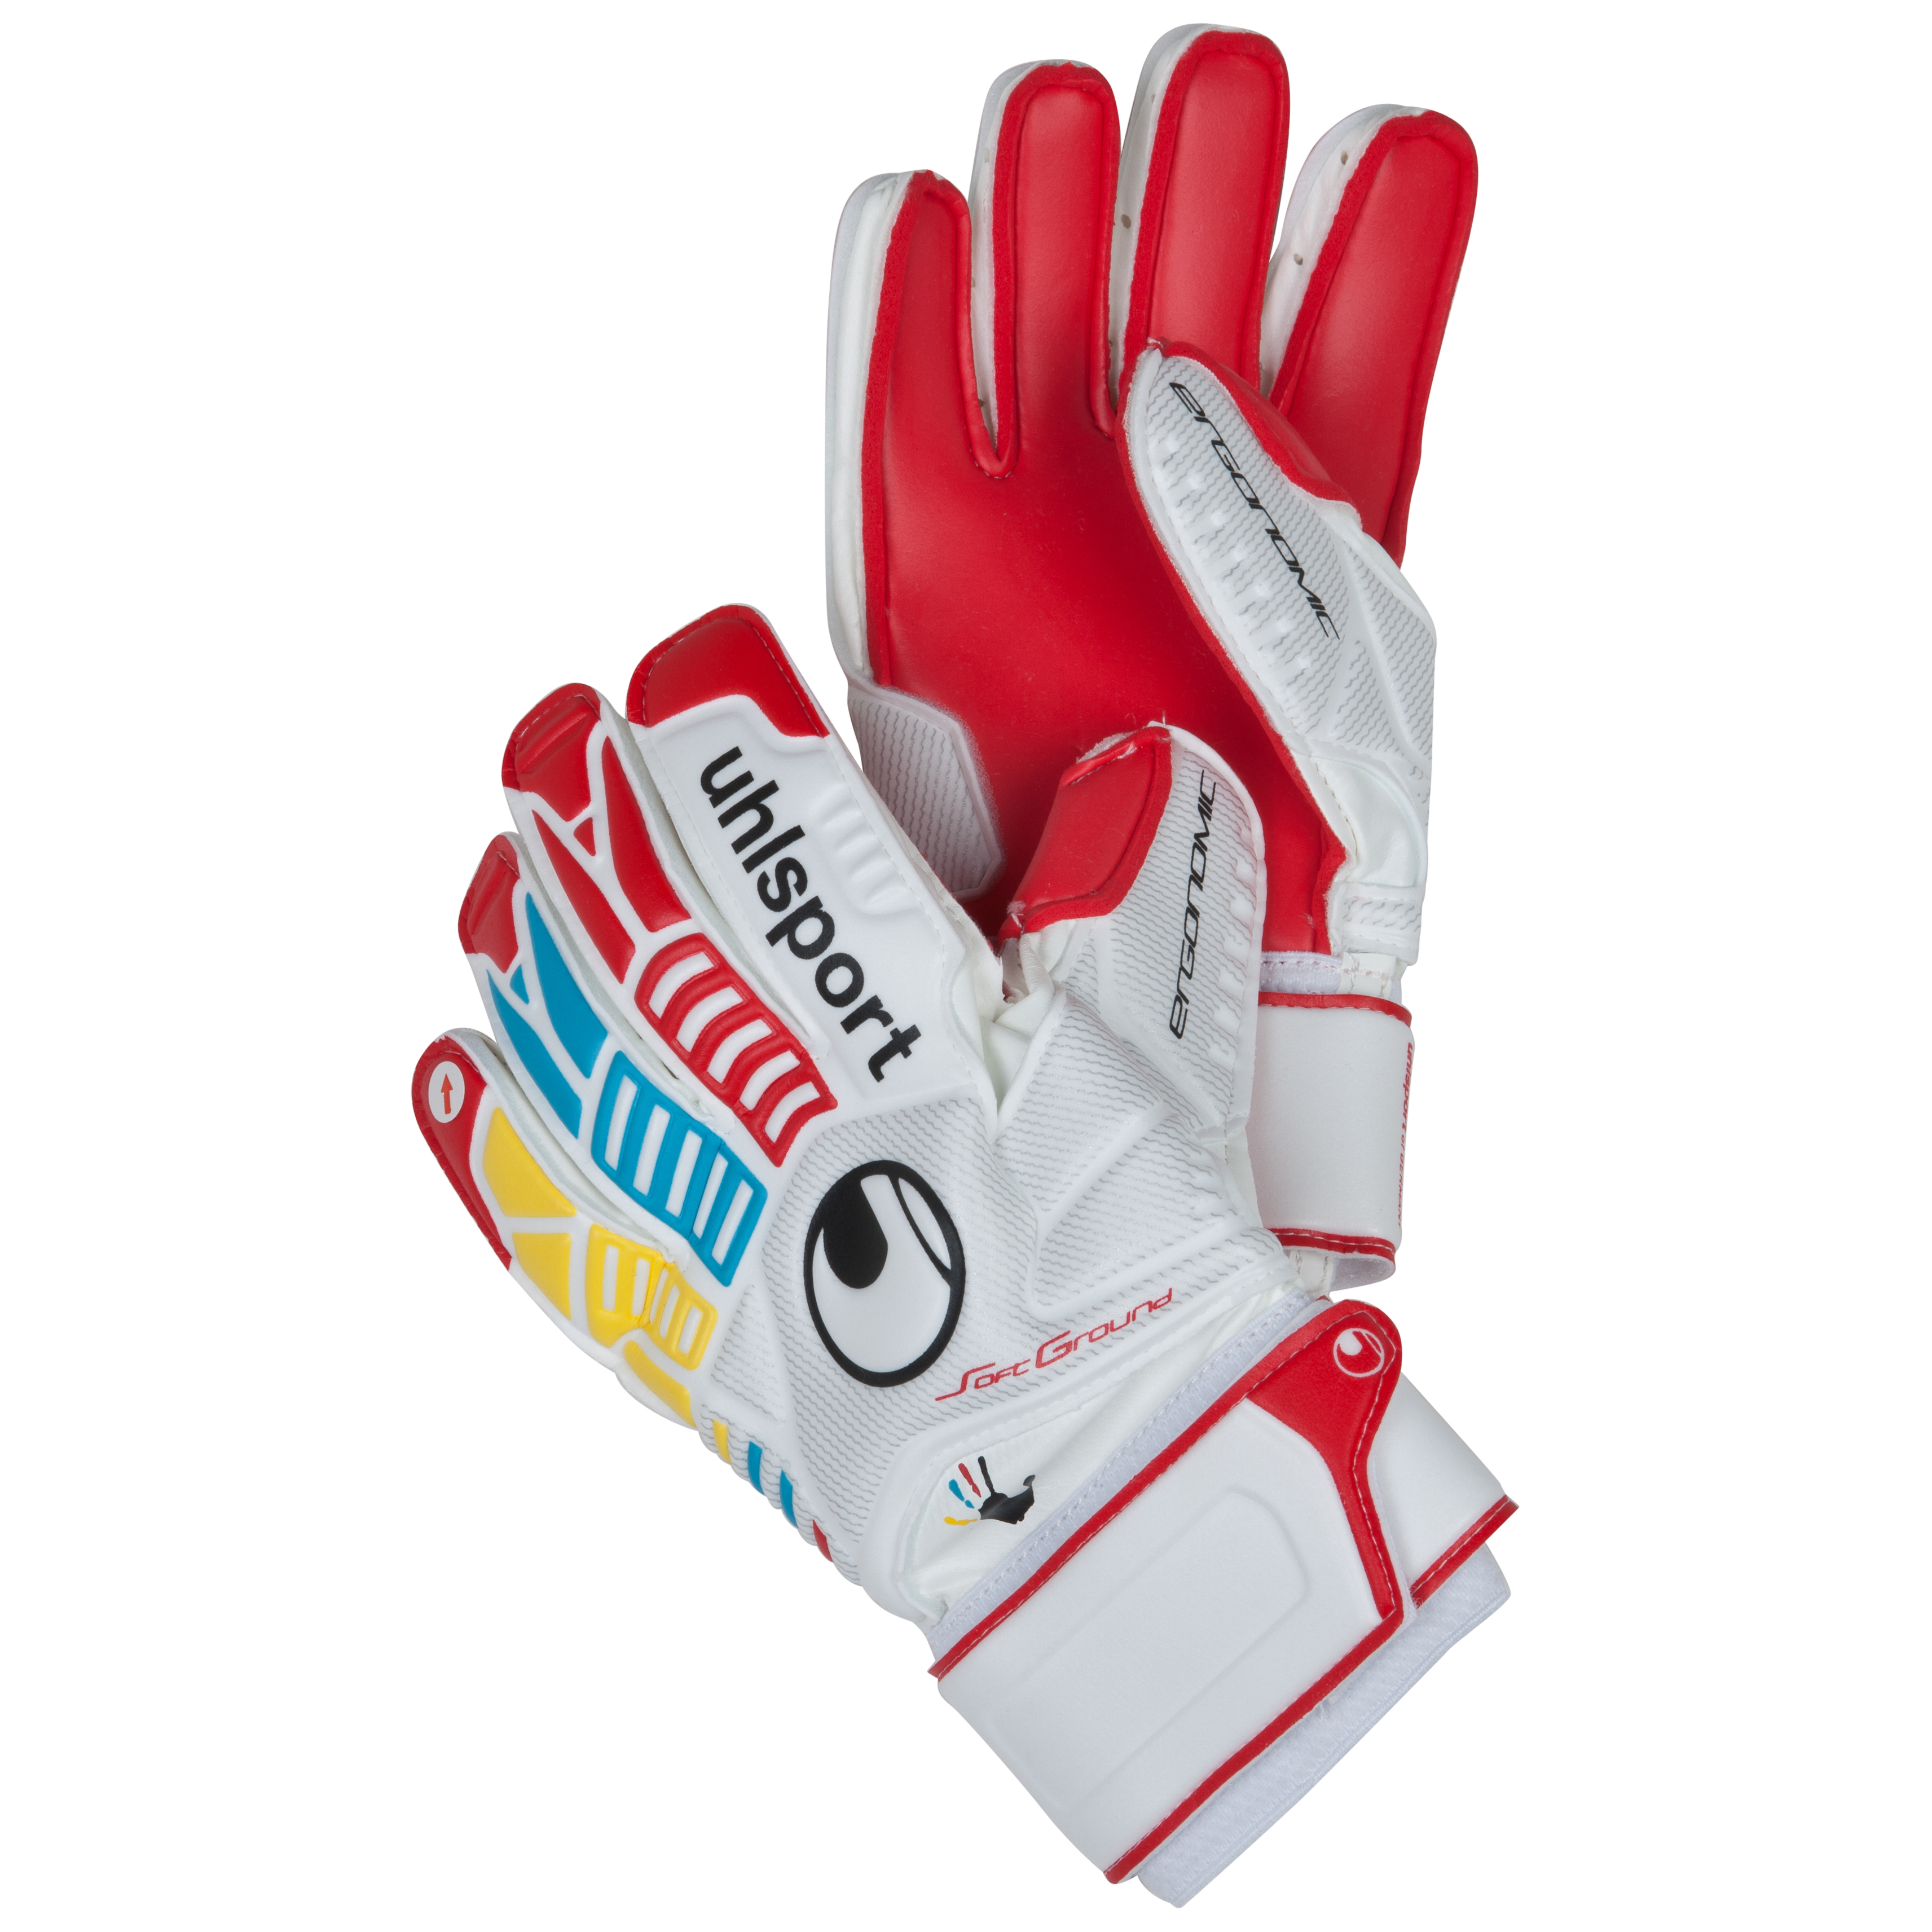 Uhlsport Ergonomic Soft inchWir Tun Wasinch Goalkeeper Gloves - White/Red/Yellow/Cyan - Kids